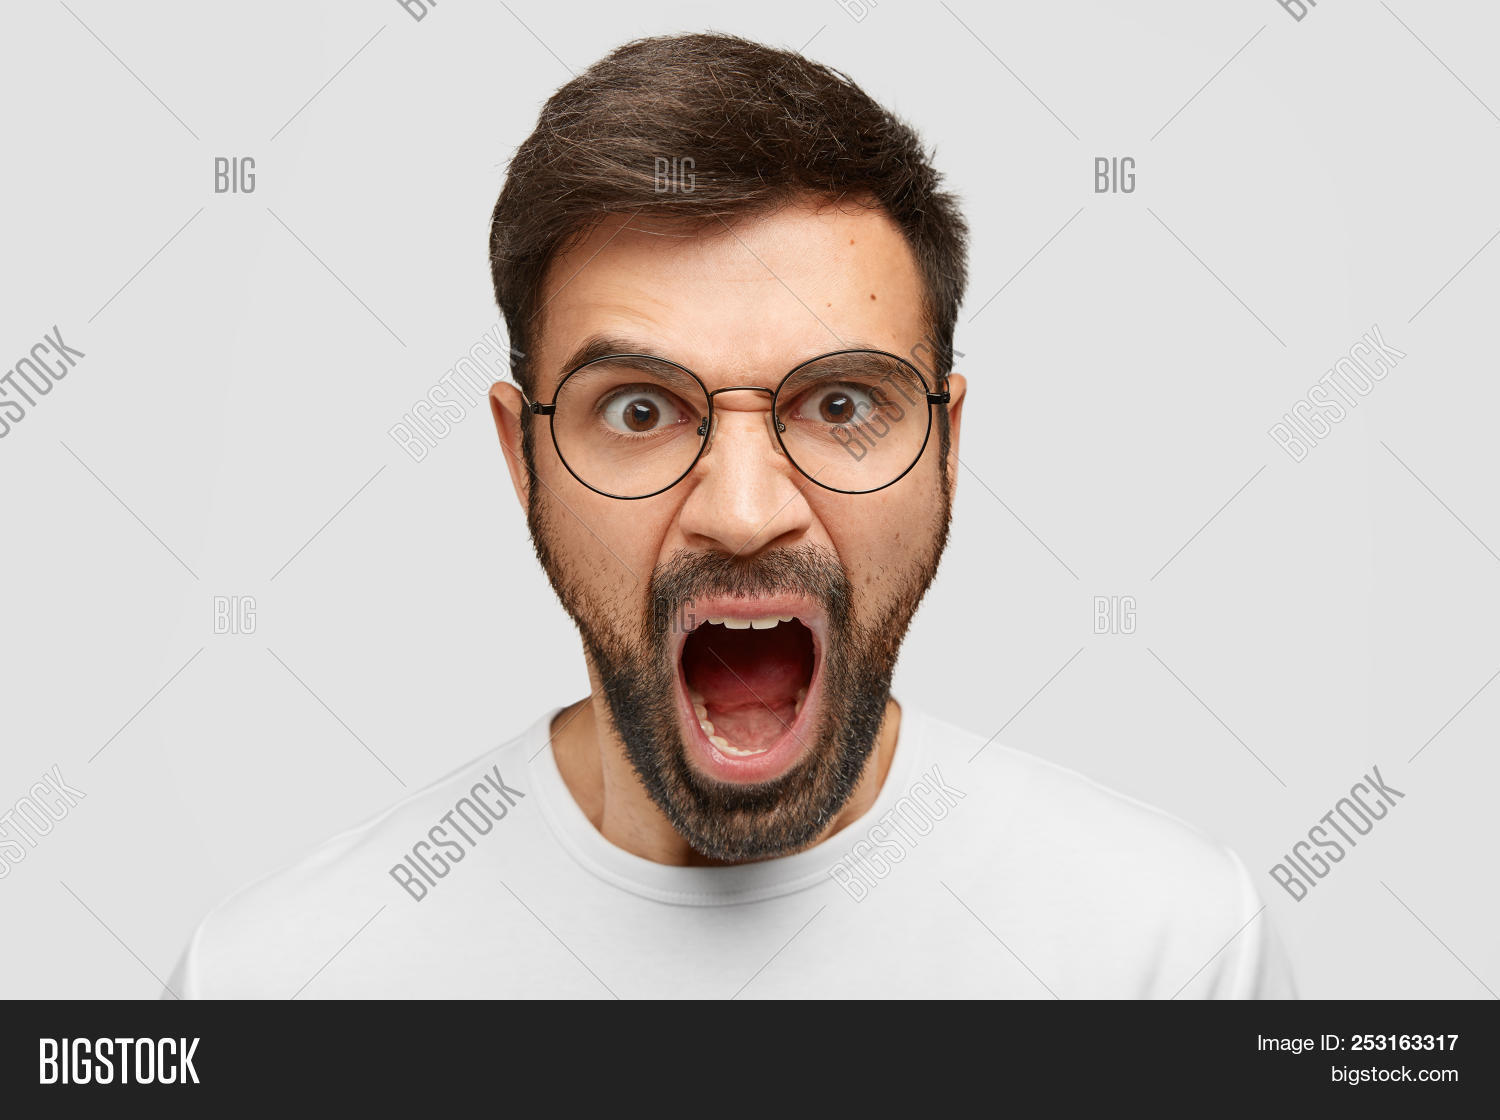 80e56a632a Surprised astonished young man stares with bugged eyes